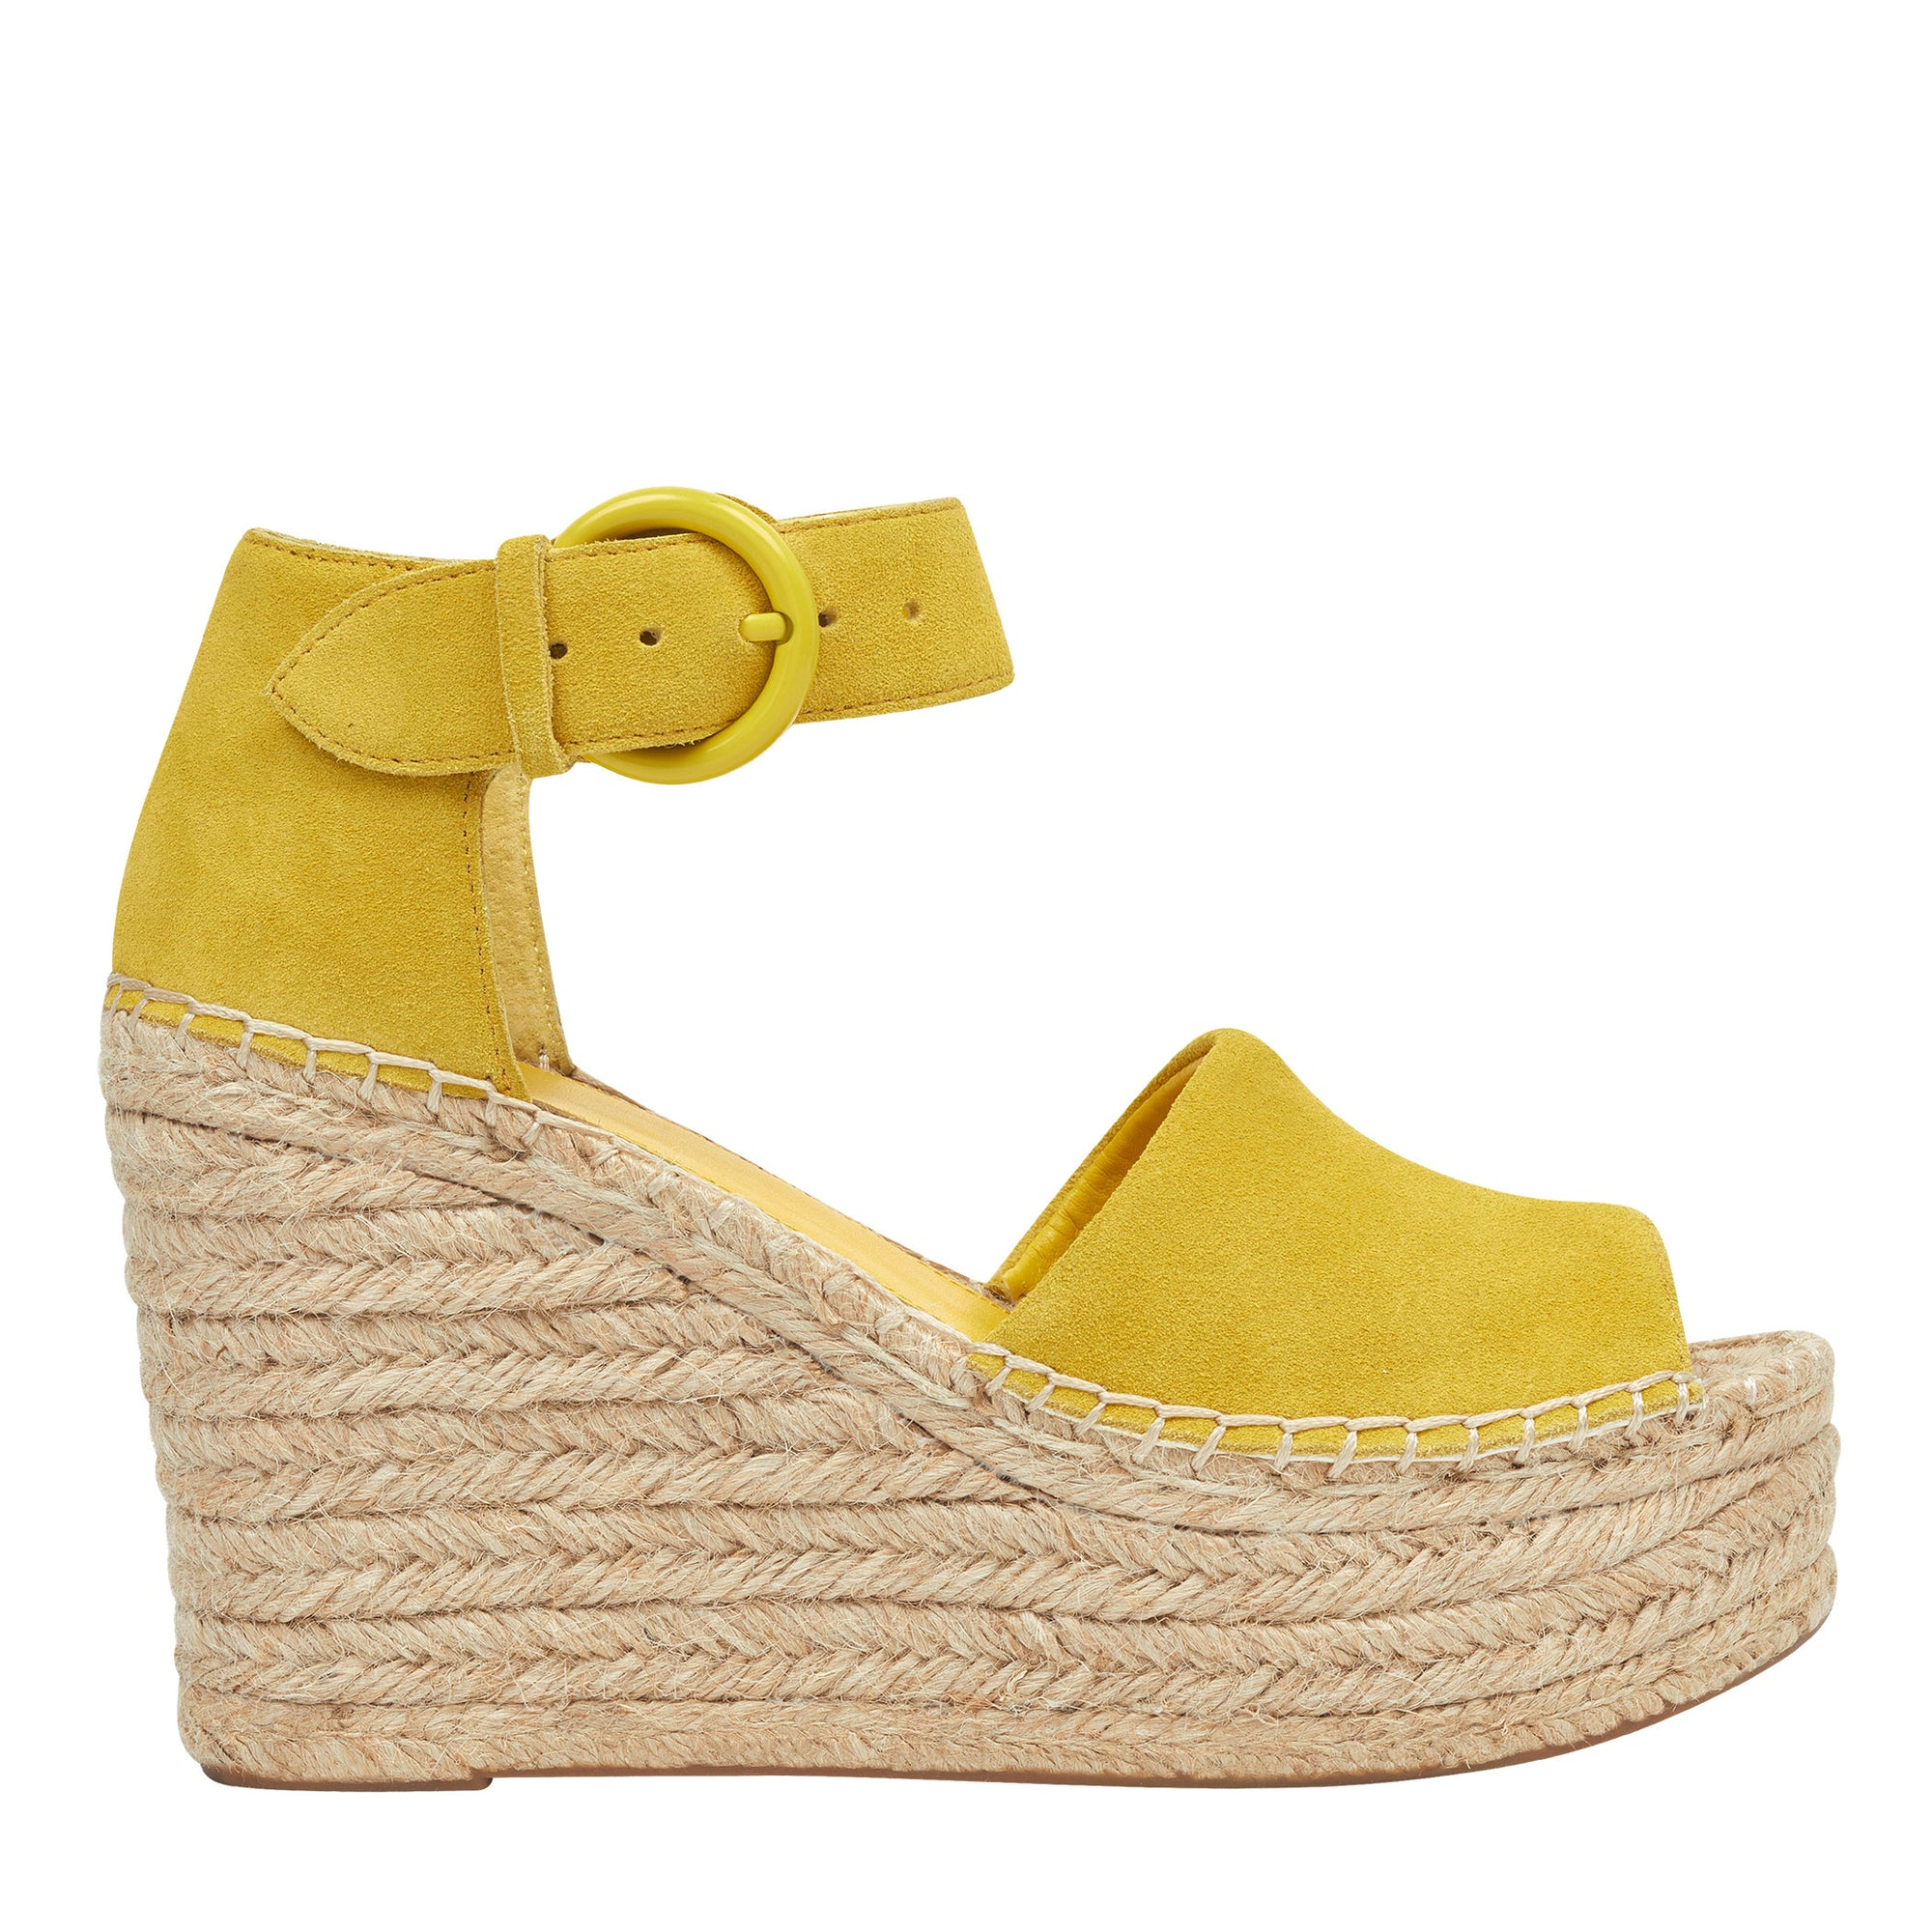 alida-espadrille-wedge-sandal-in-yellow-suede